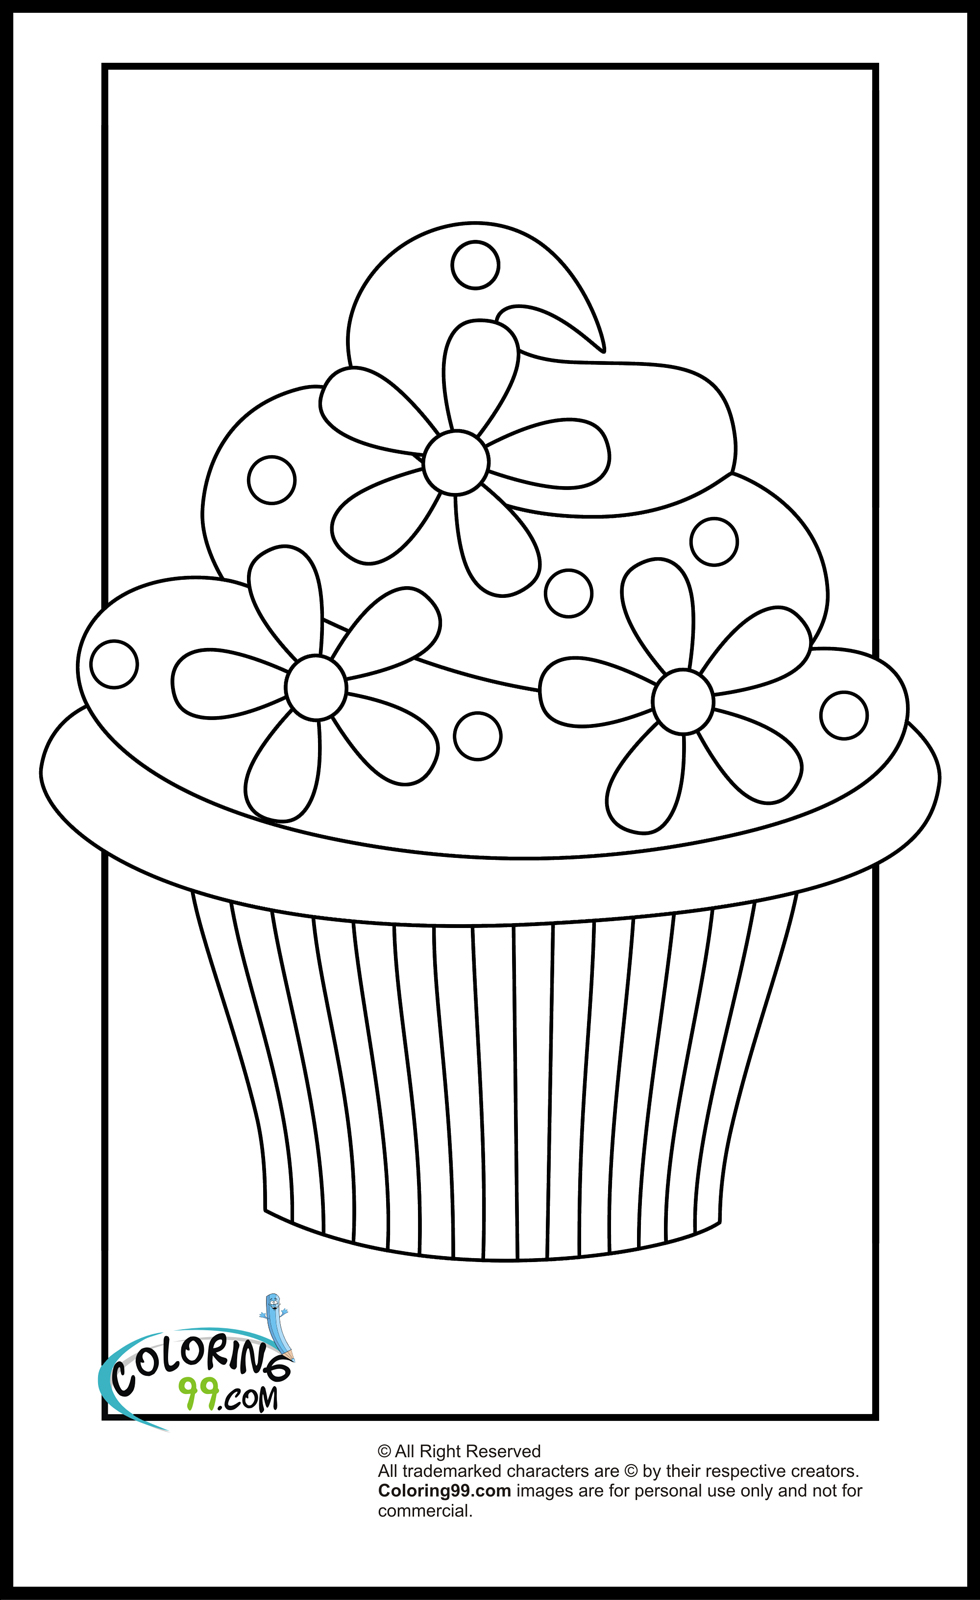 Free Printable Images Of Cupcakes : Free coloring pages of cupcake pictures